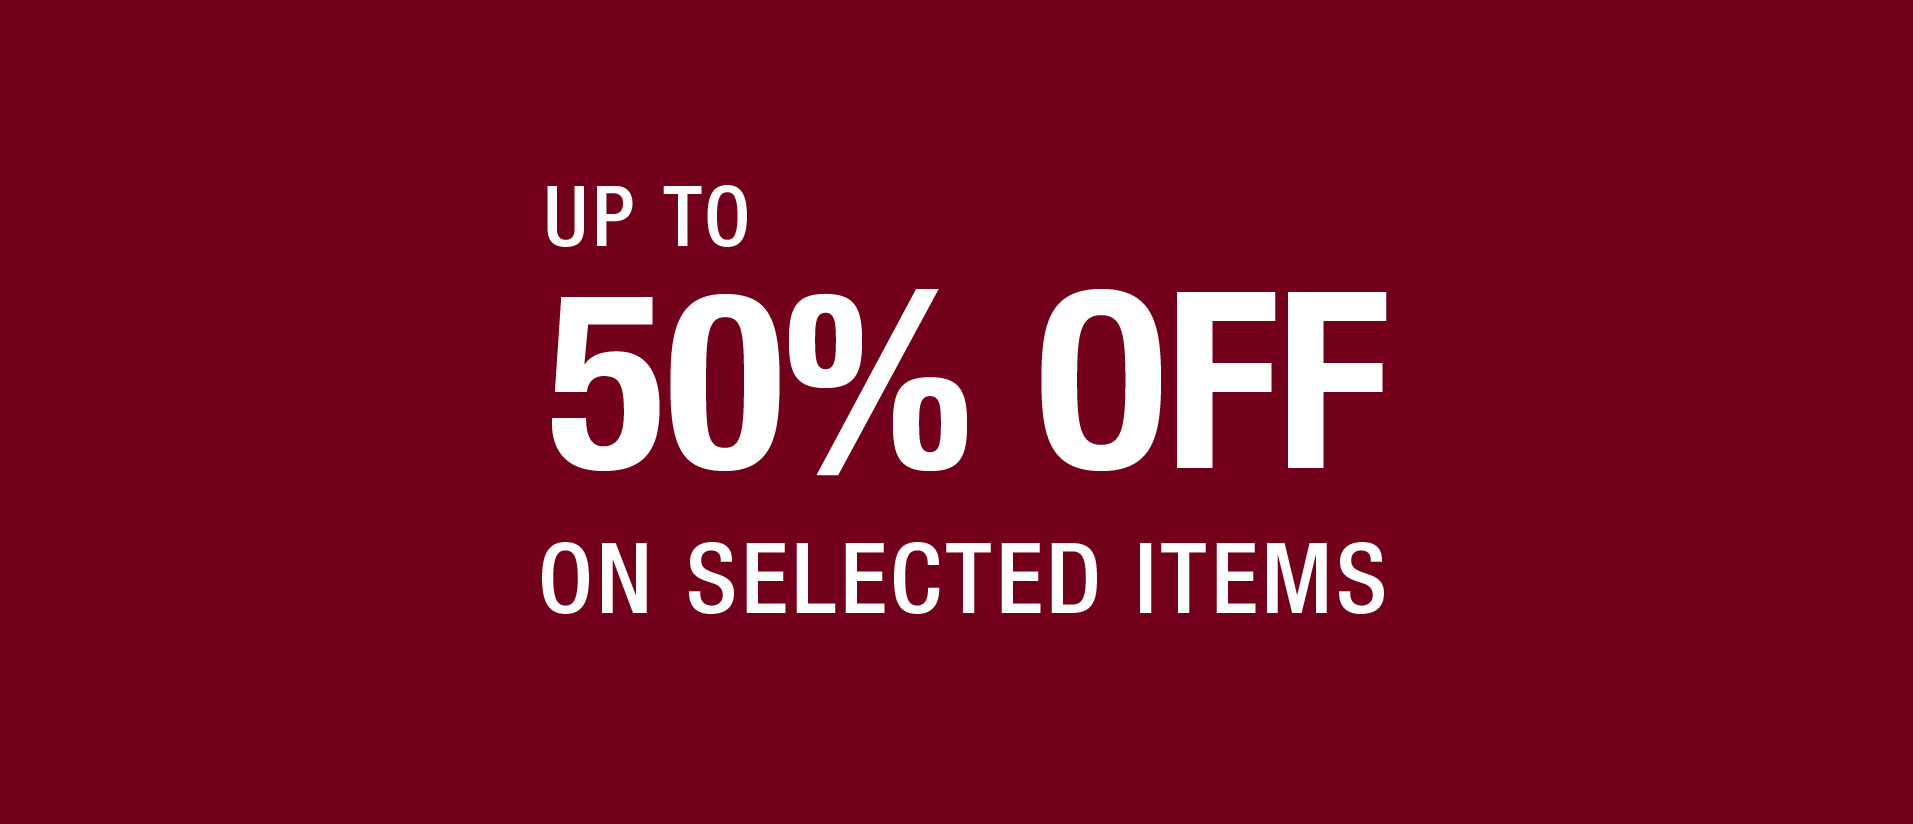 Now up to 50% off